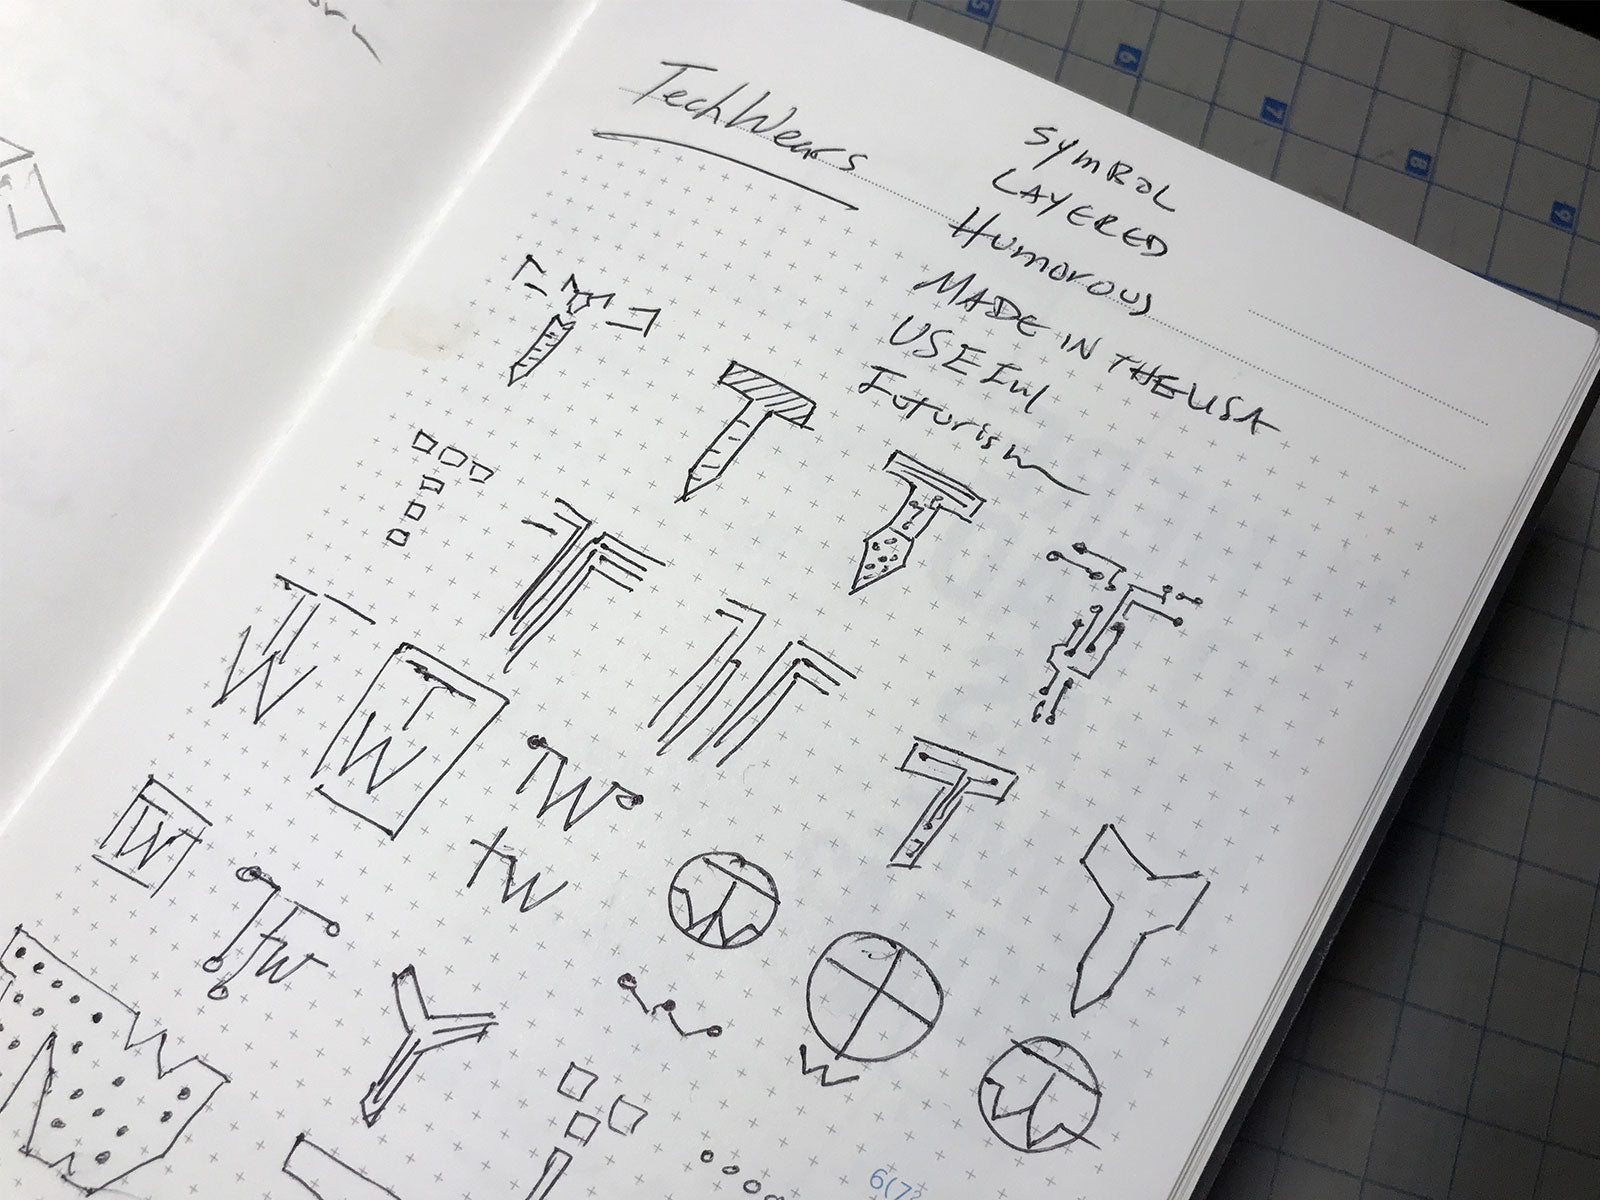 Initial sketches of TechWears logo redesign